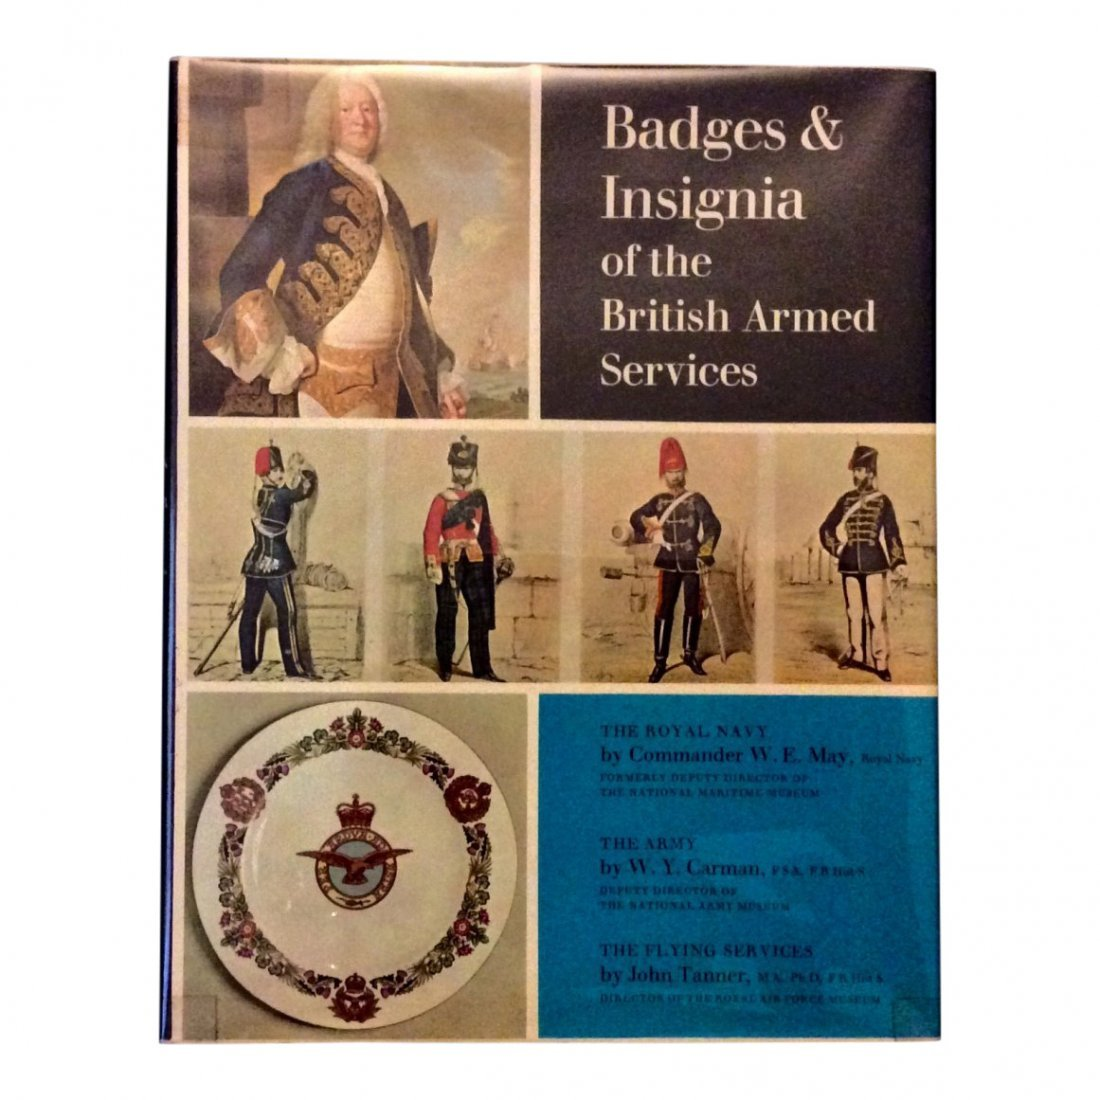 Badges & Insignia of the British Armed Services, 1974